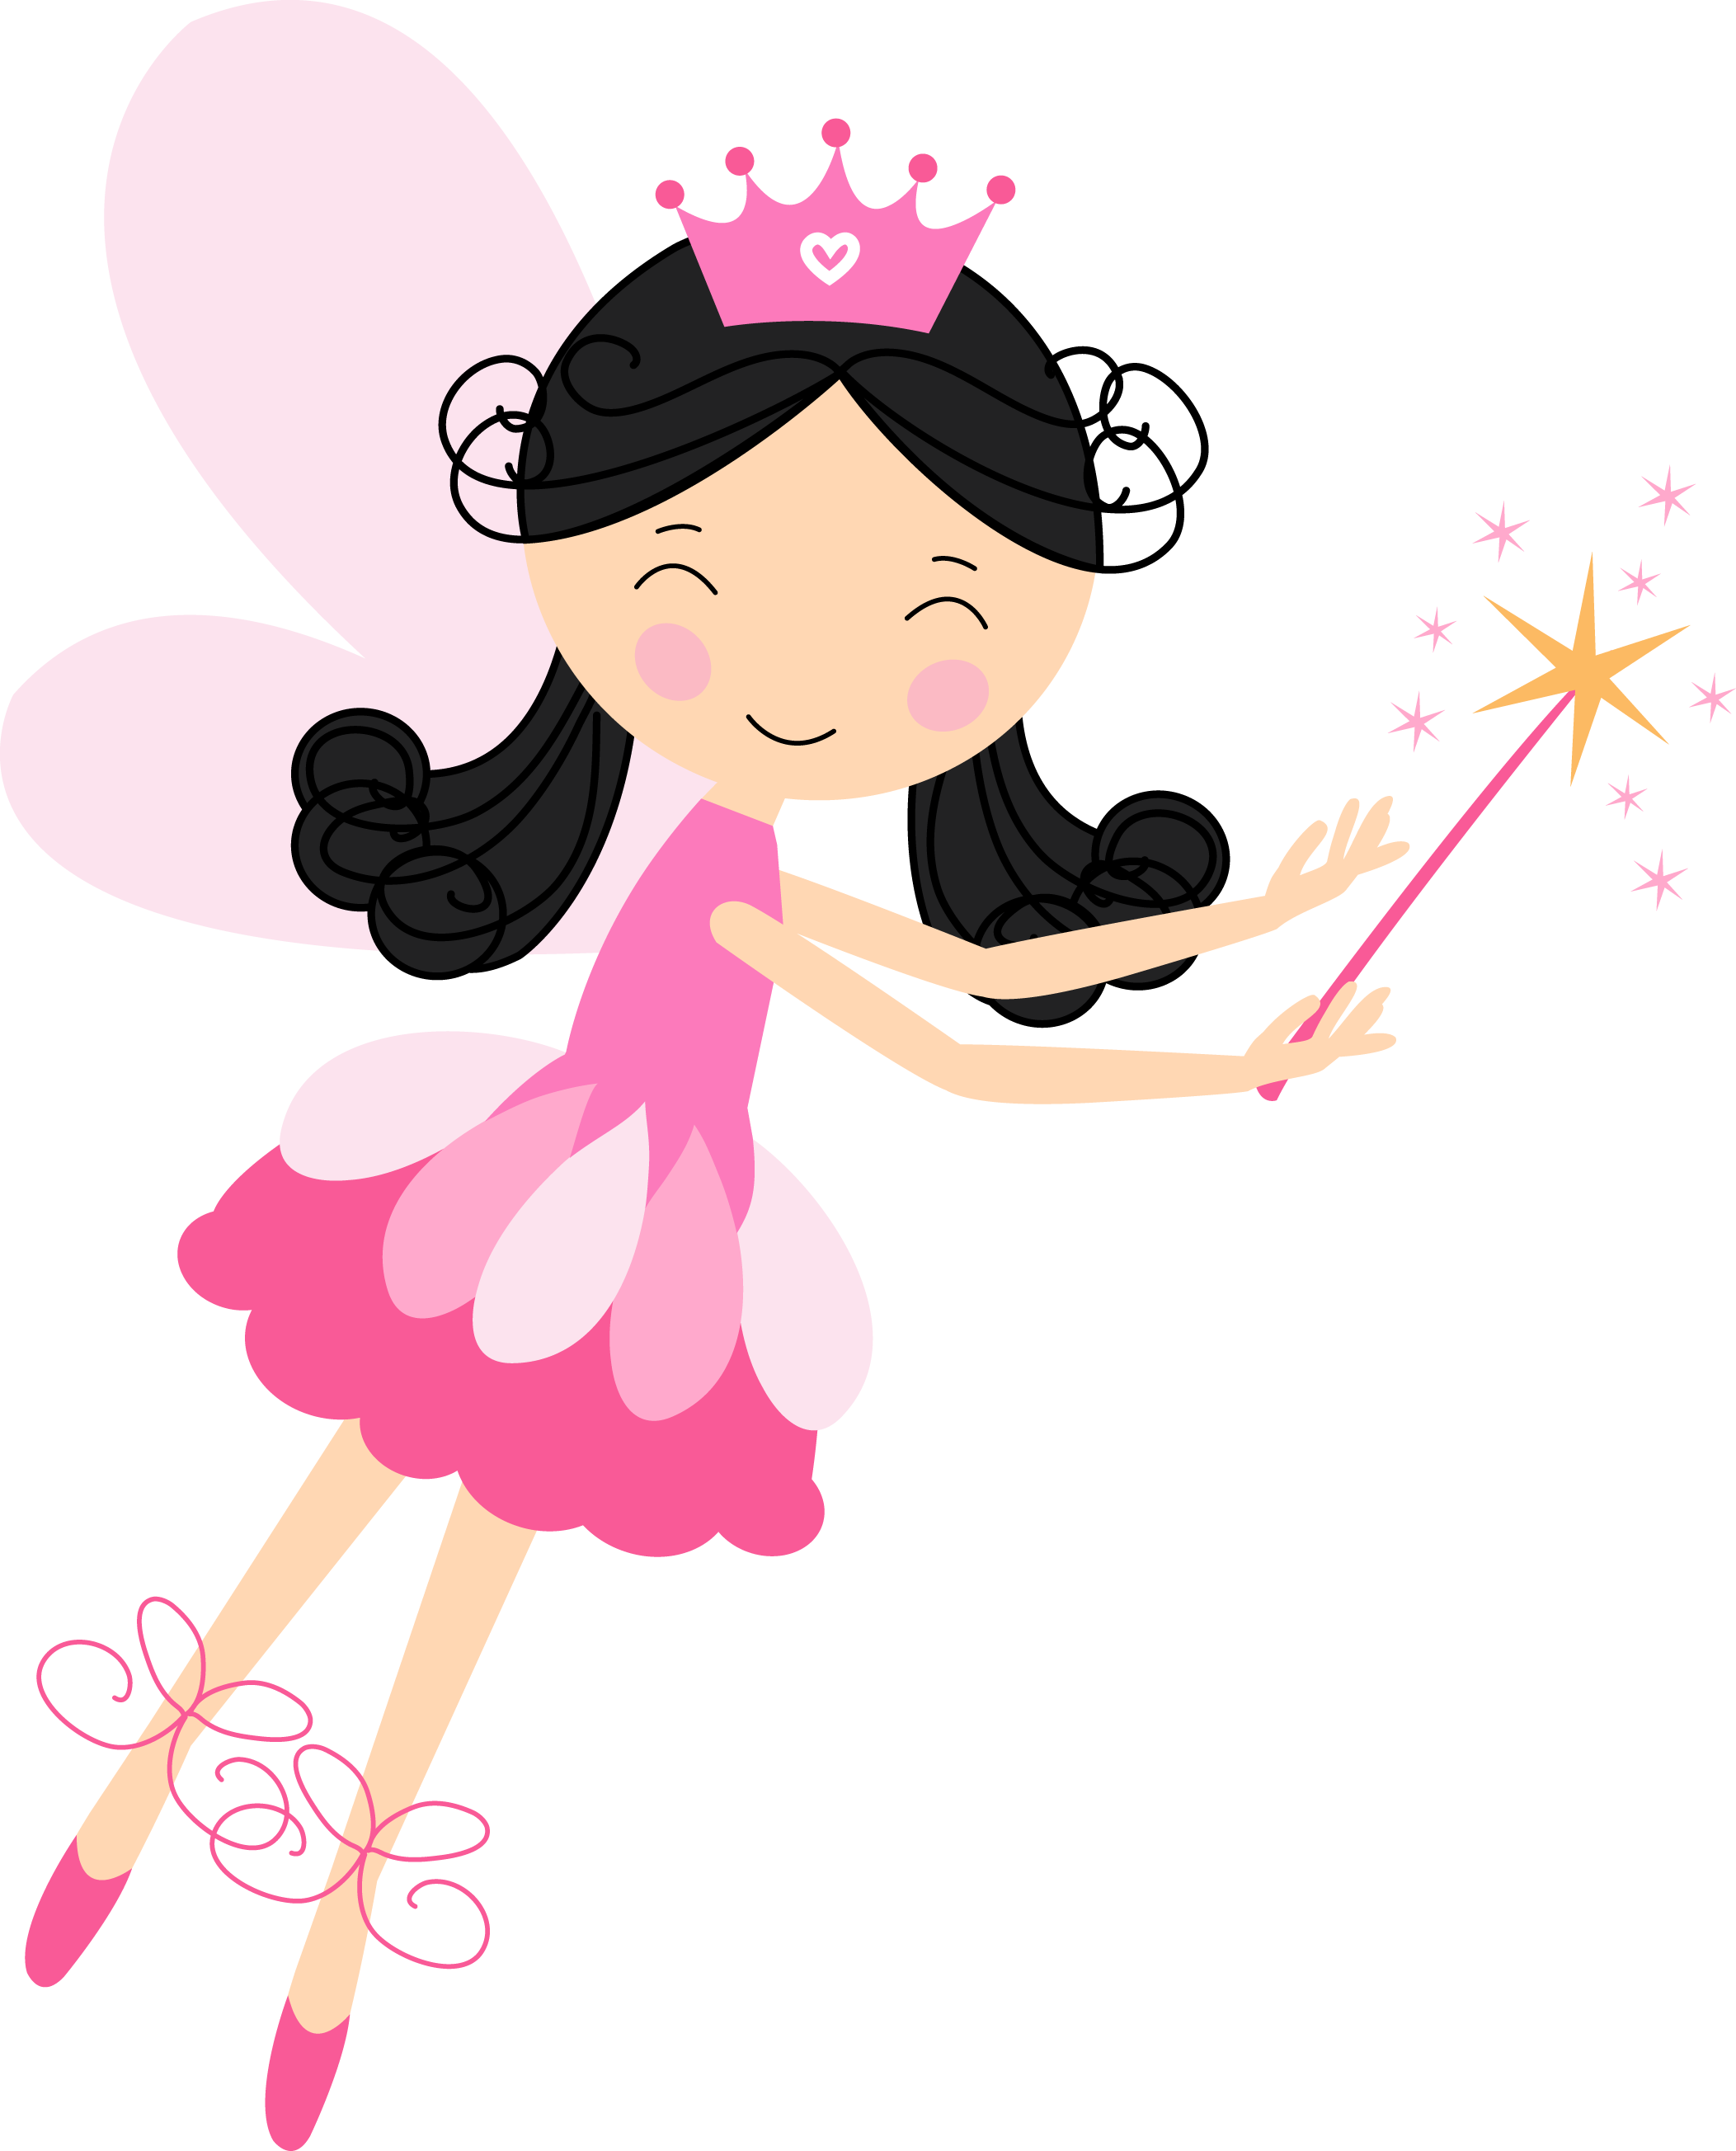 Tooth crown fairy clipart clipart free ✿**✿*ALAS*✿**✿* | Etiquetas | Pinterest | Fairy, Clip art and ... clipart free